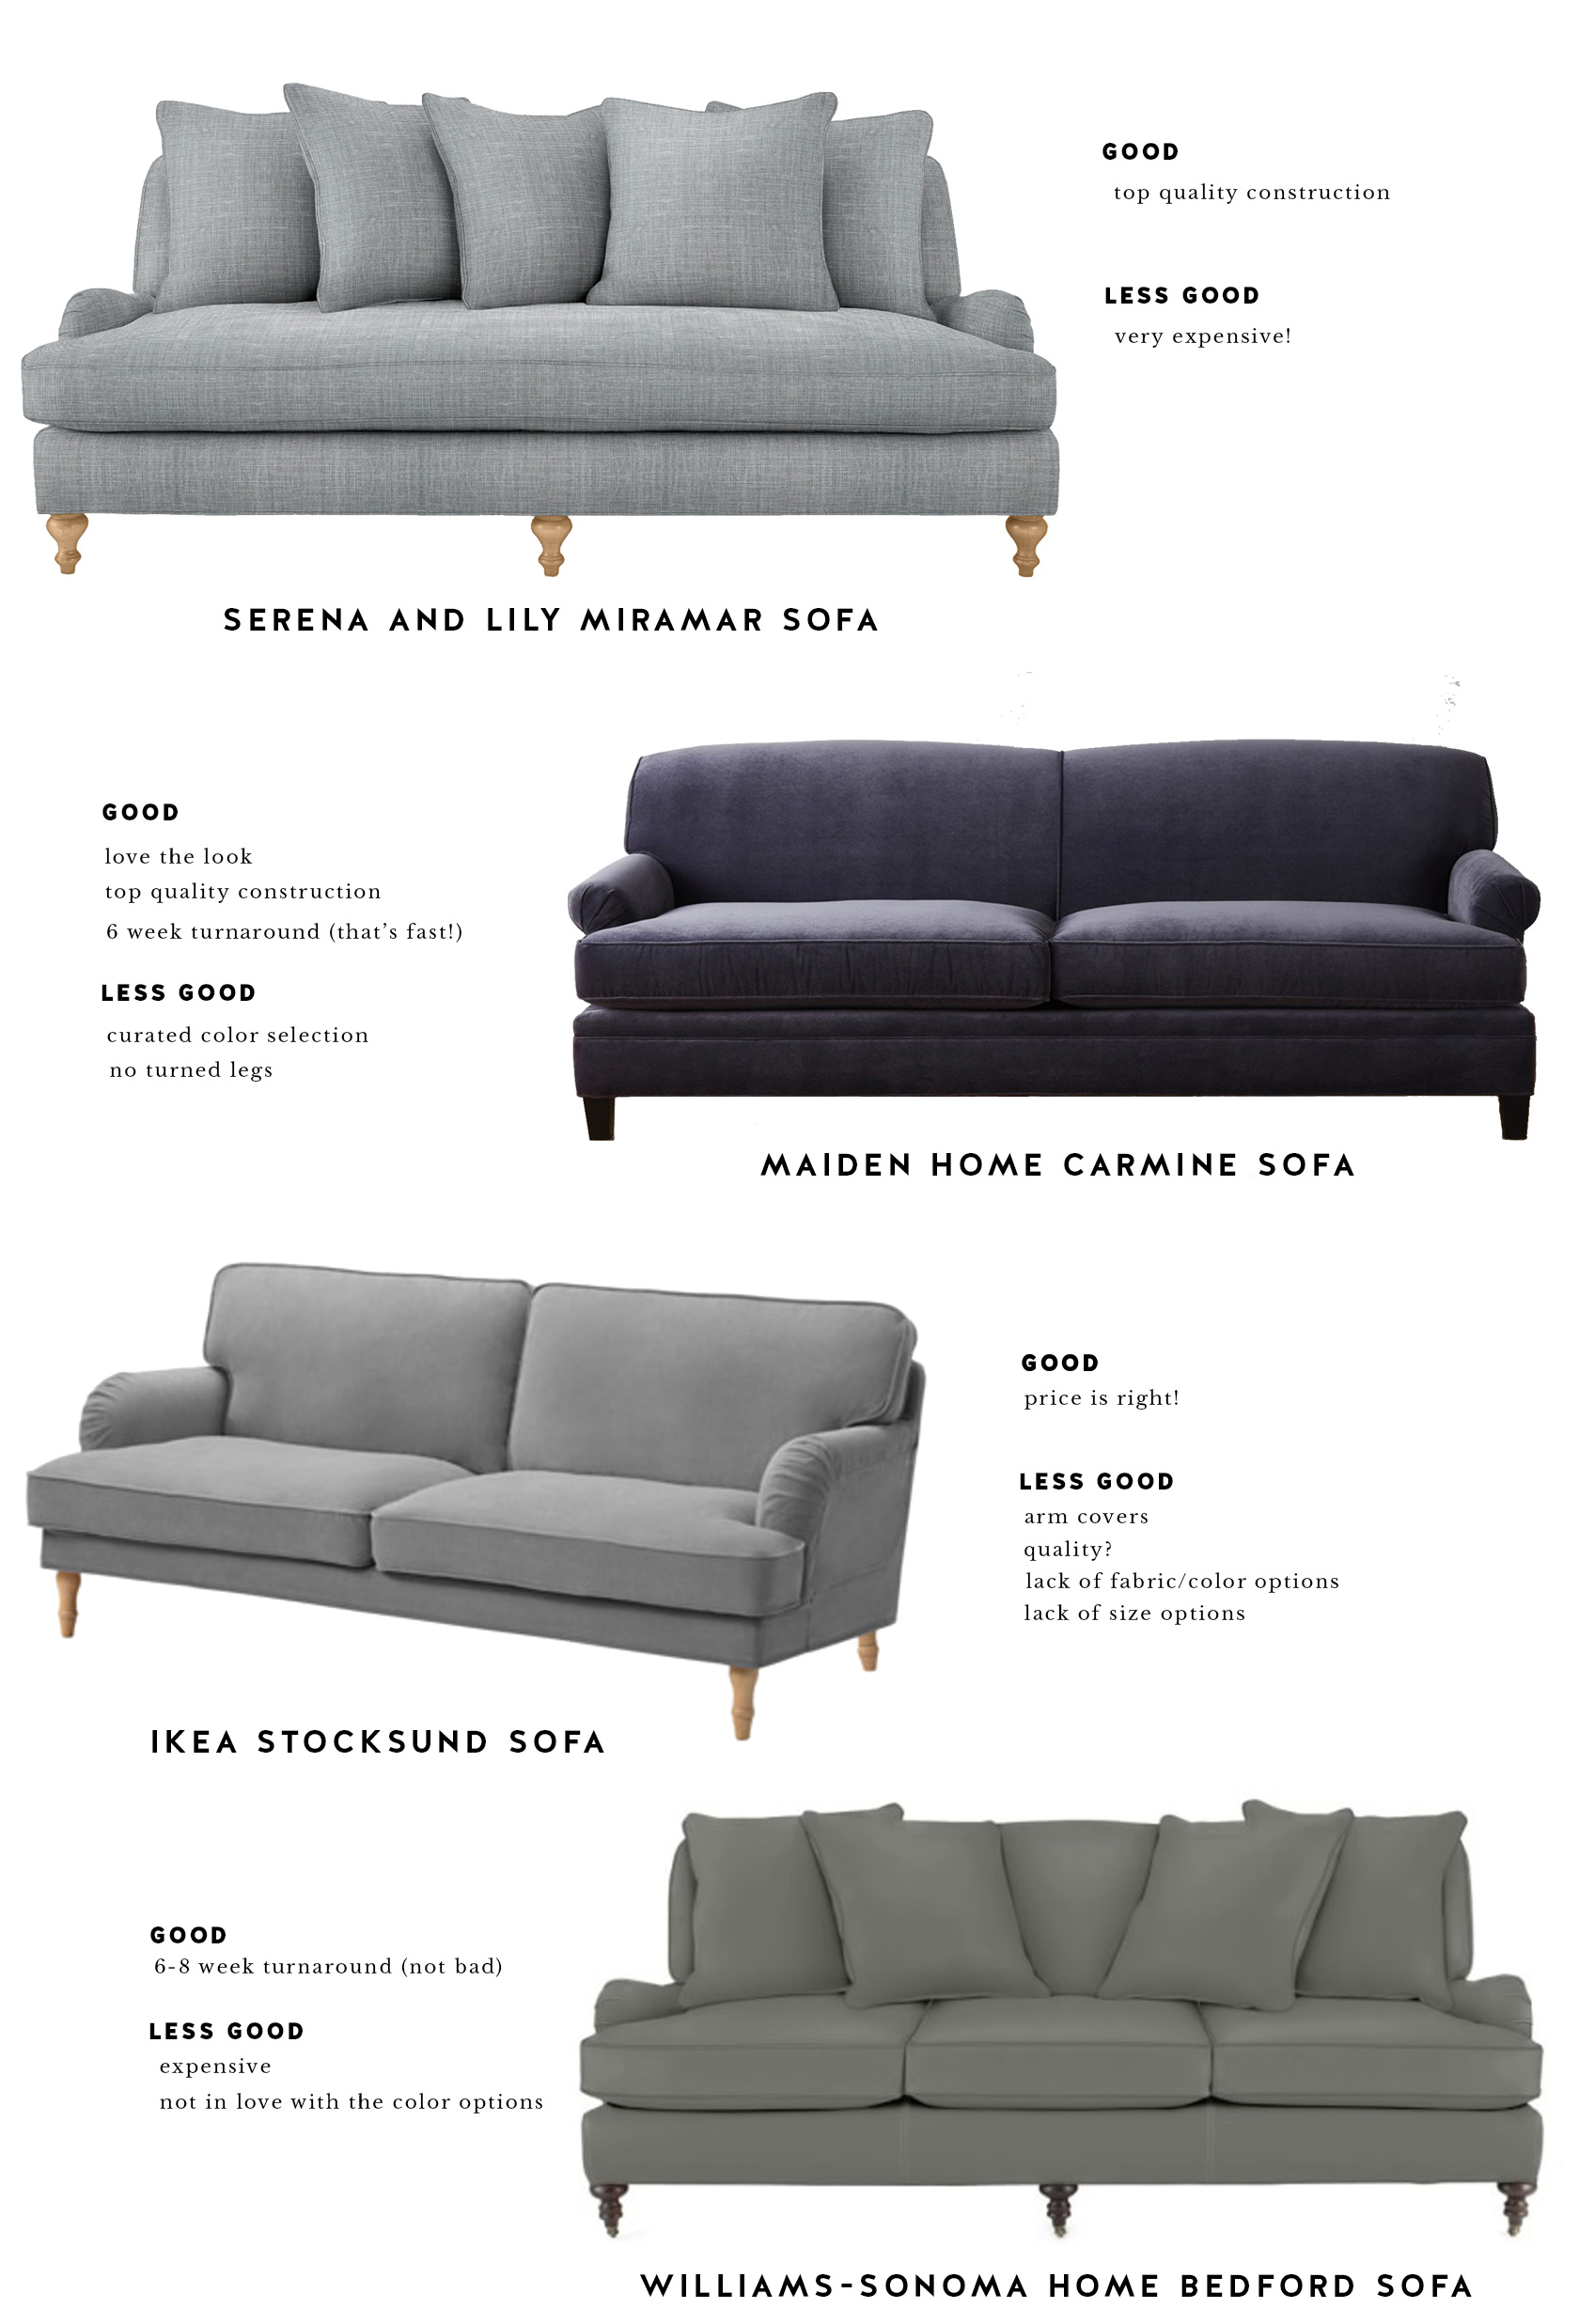 Serena And Lily Miramar Sofa: Ah, Serena And Lily. I Love Their Stuff So  Muchu2026their Prices Not So Much. On The Other Hand, This Sofa Is Made In A ...